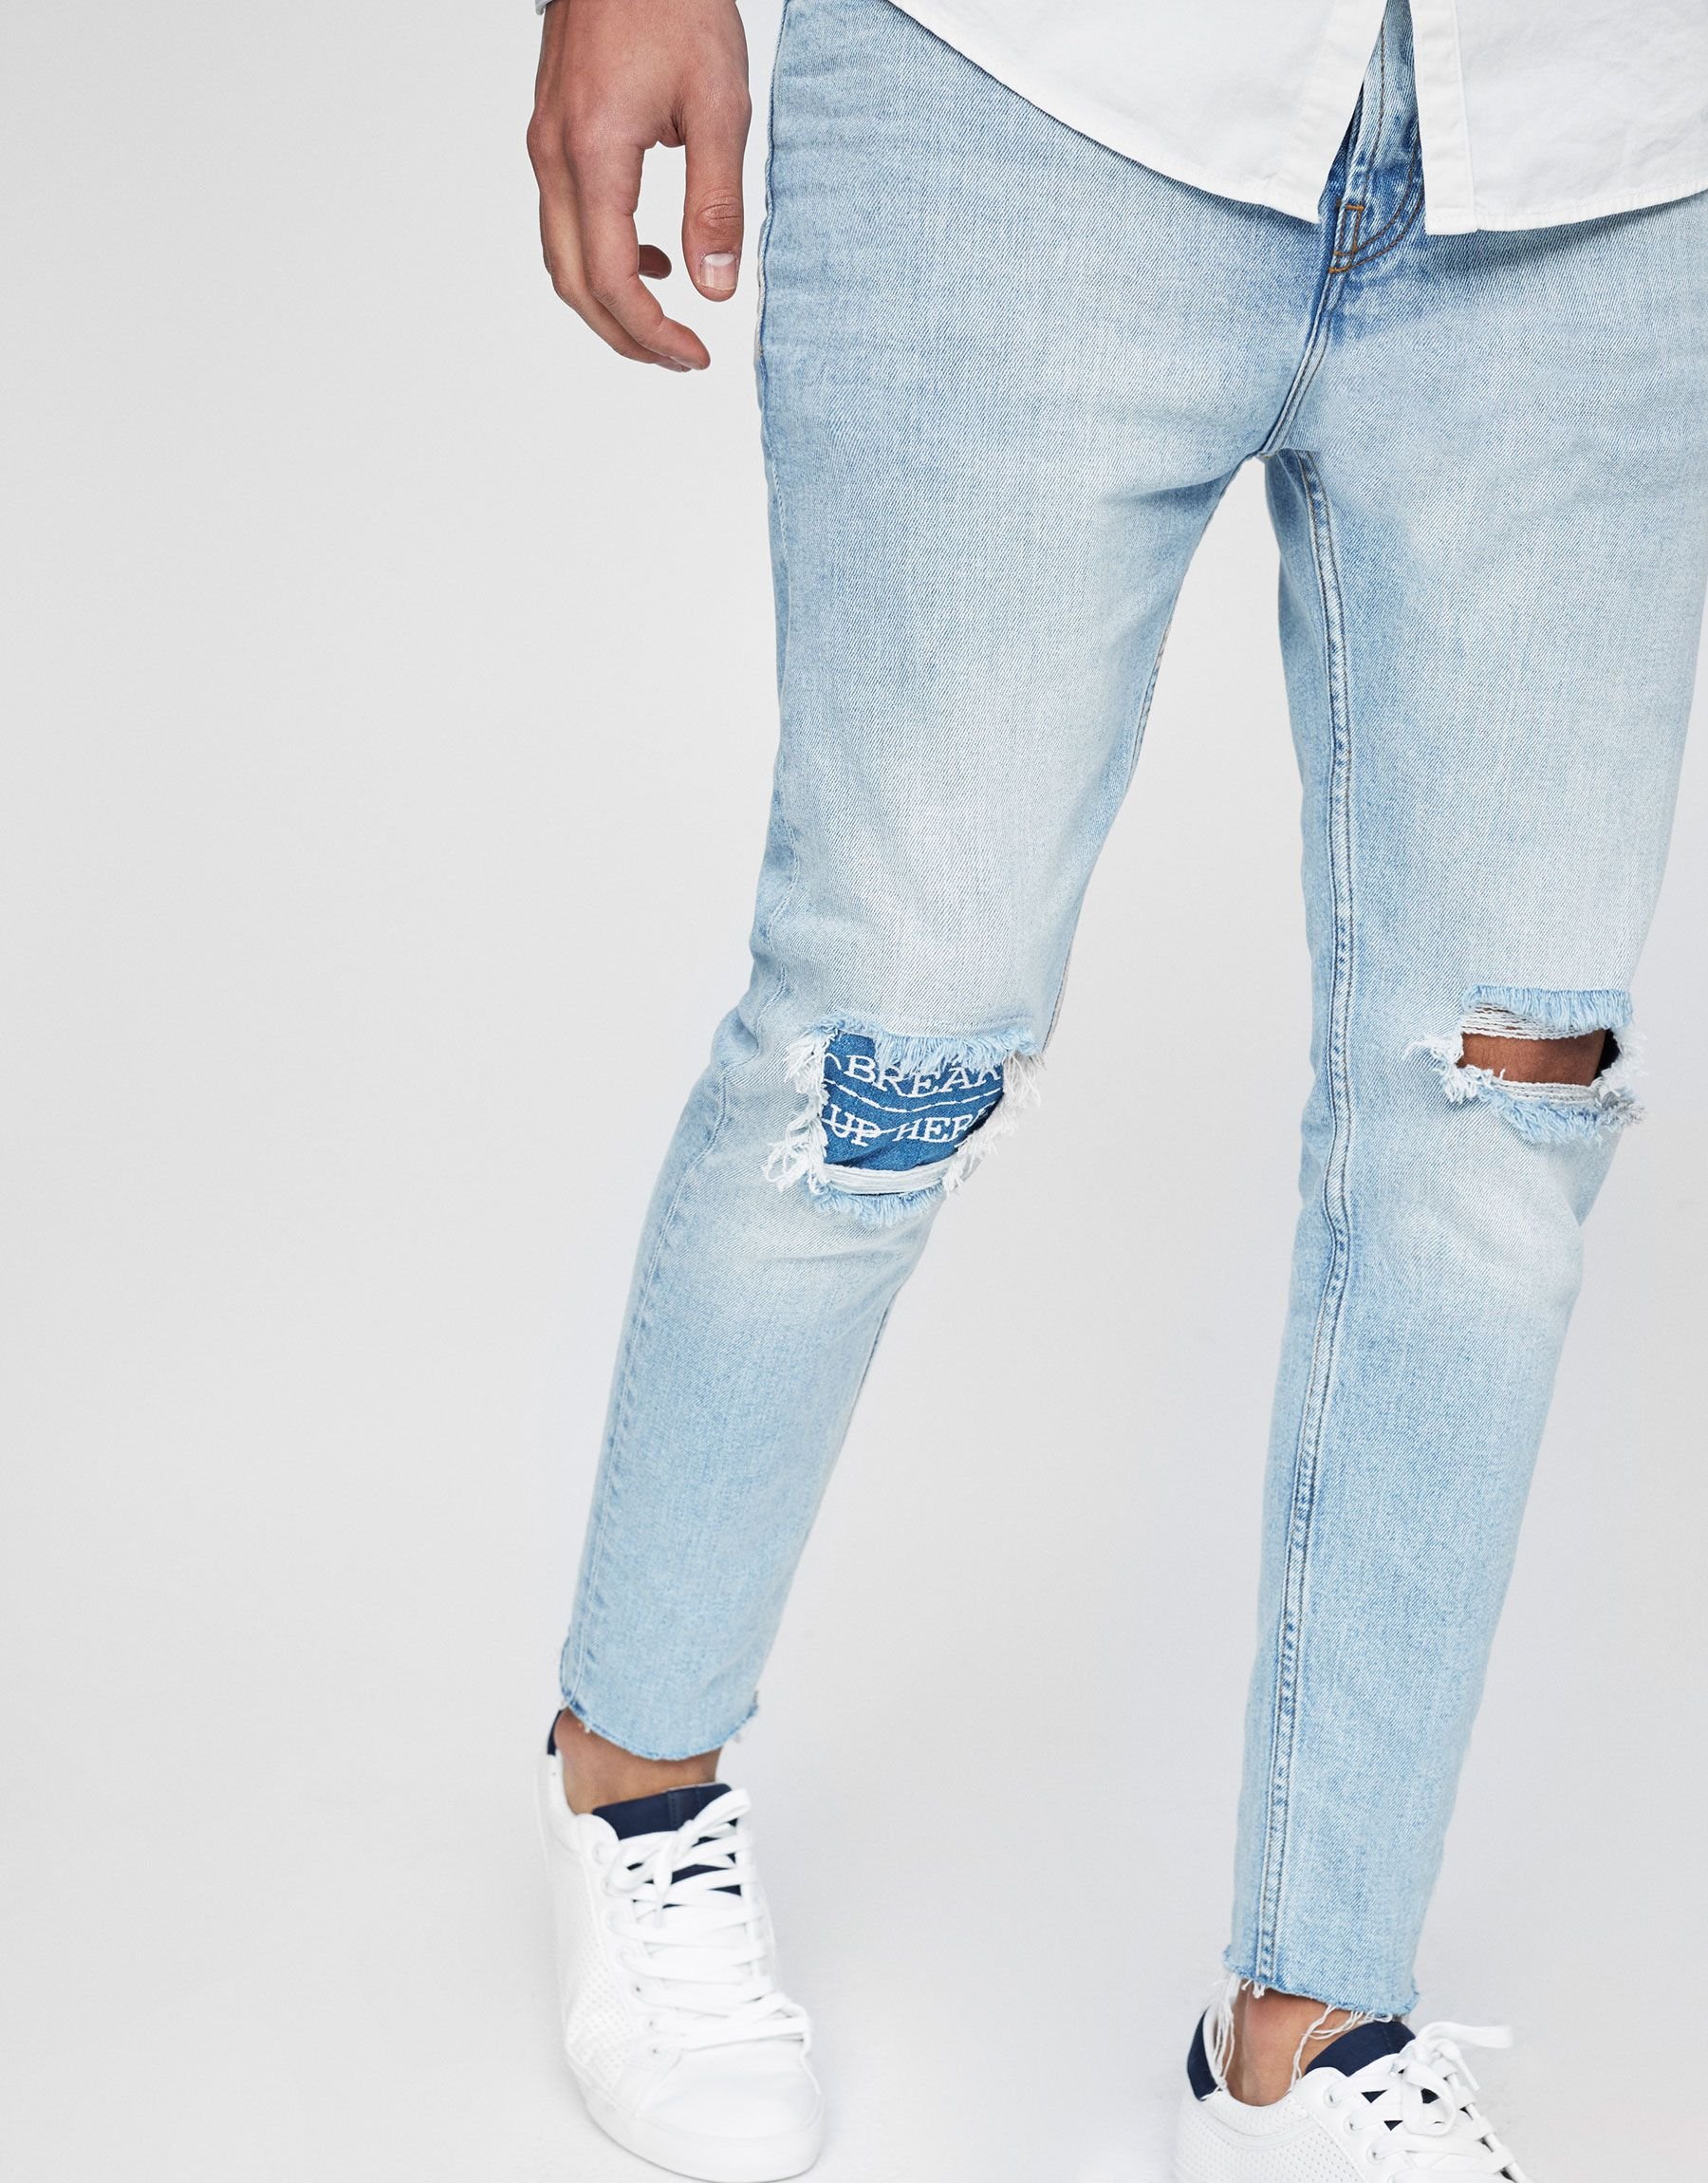 a1bb3a5977d Jeans carrot fit rotos - Jeans - Ropa - Ropa - Hombre - PULL&BEAR España